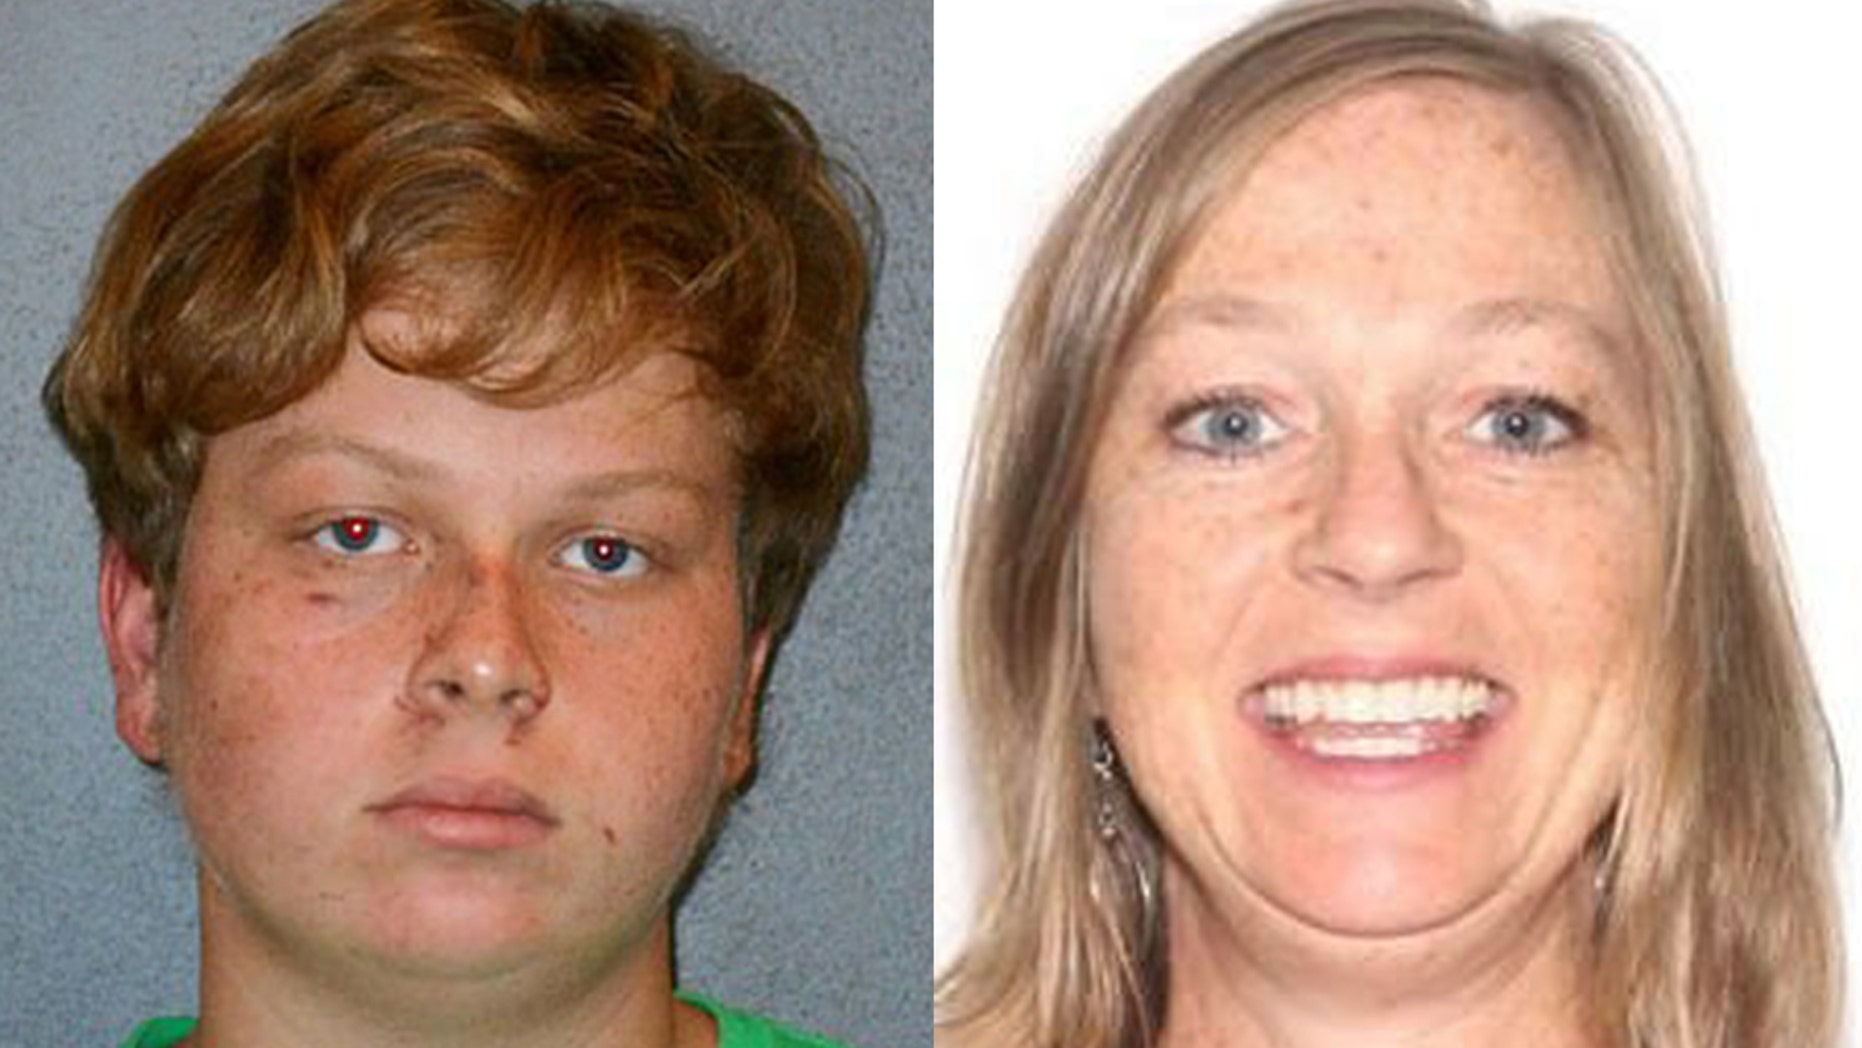 Florida teen charged with killing mother, burying her body over poor grade